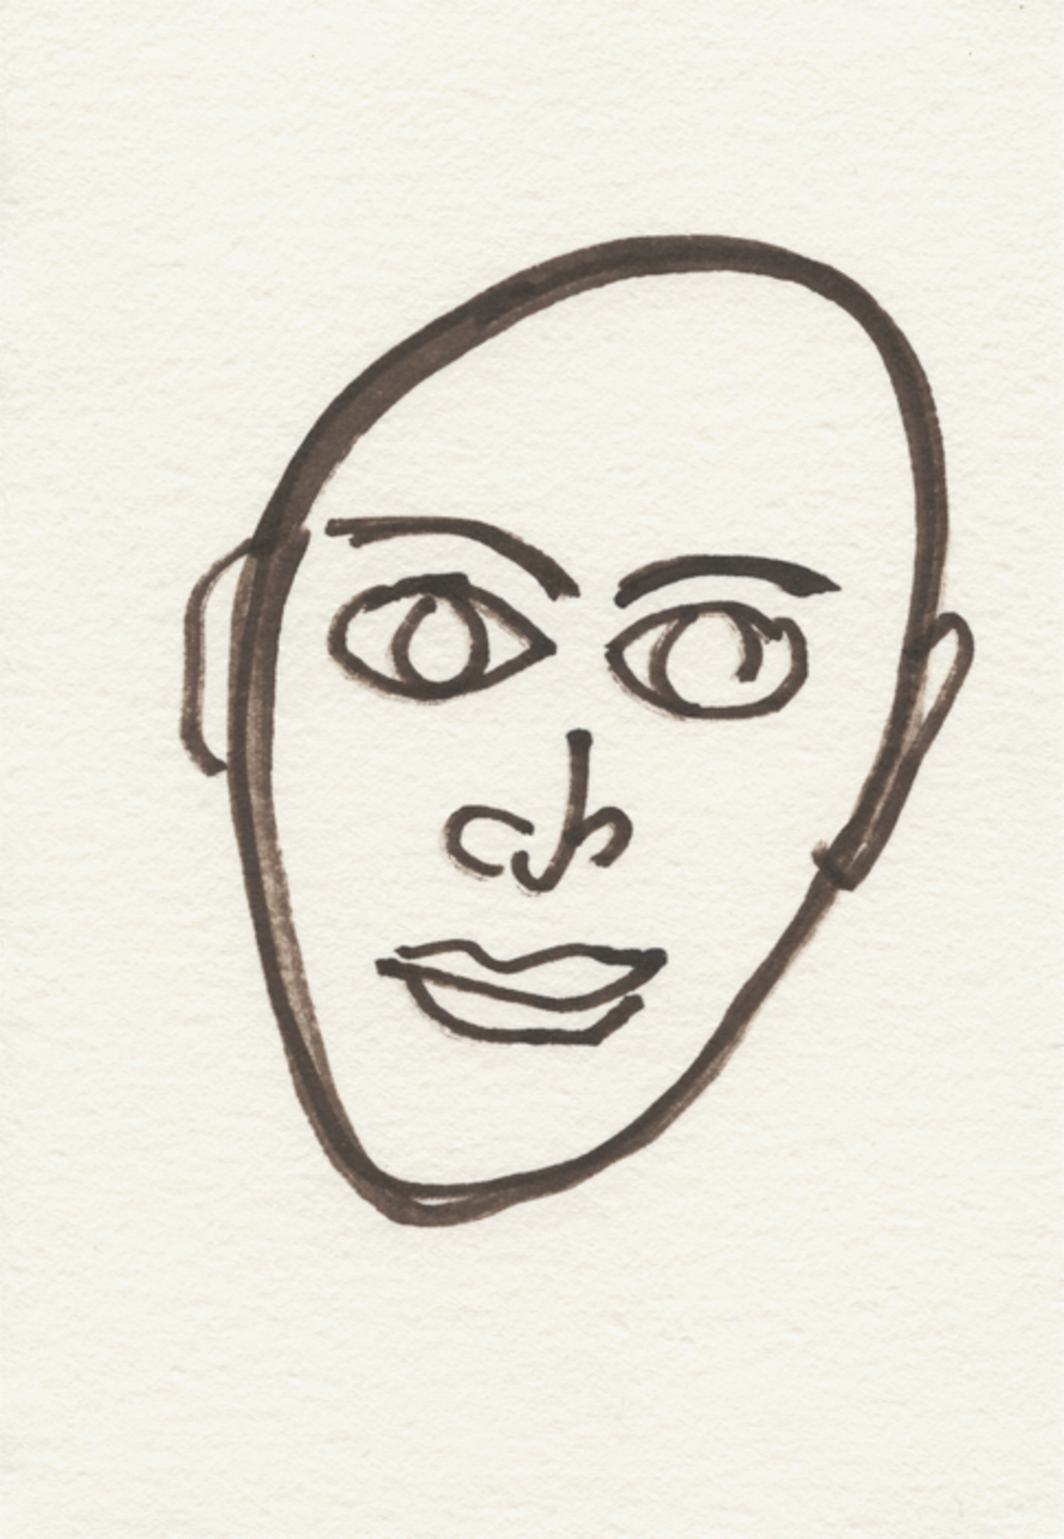 Hudson, drawn by Charles Ray, 2014.